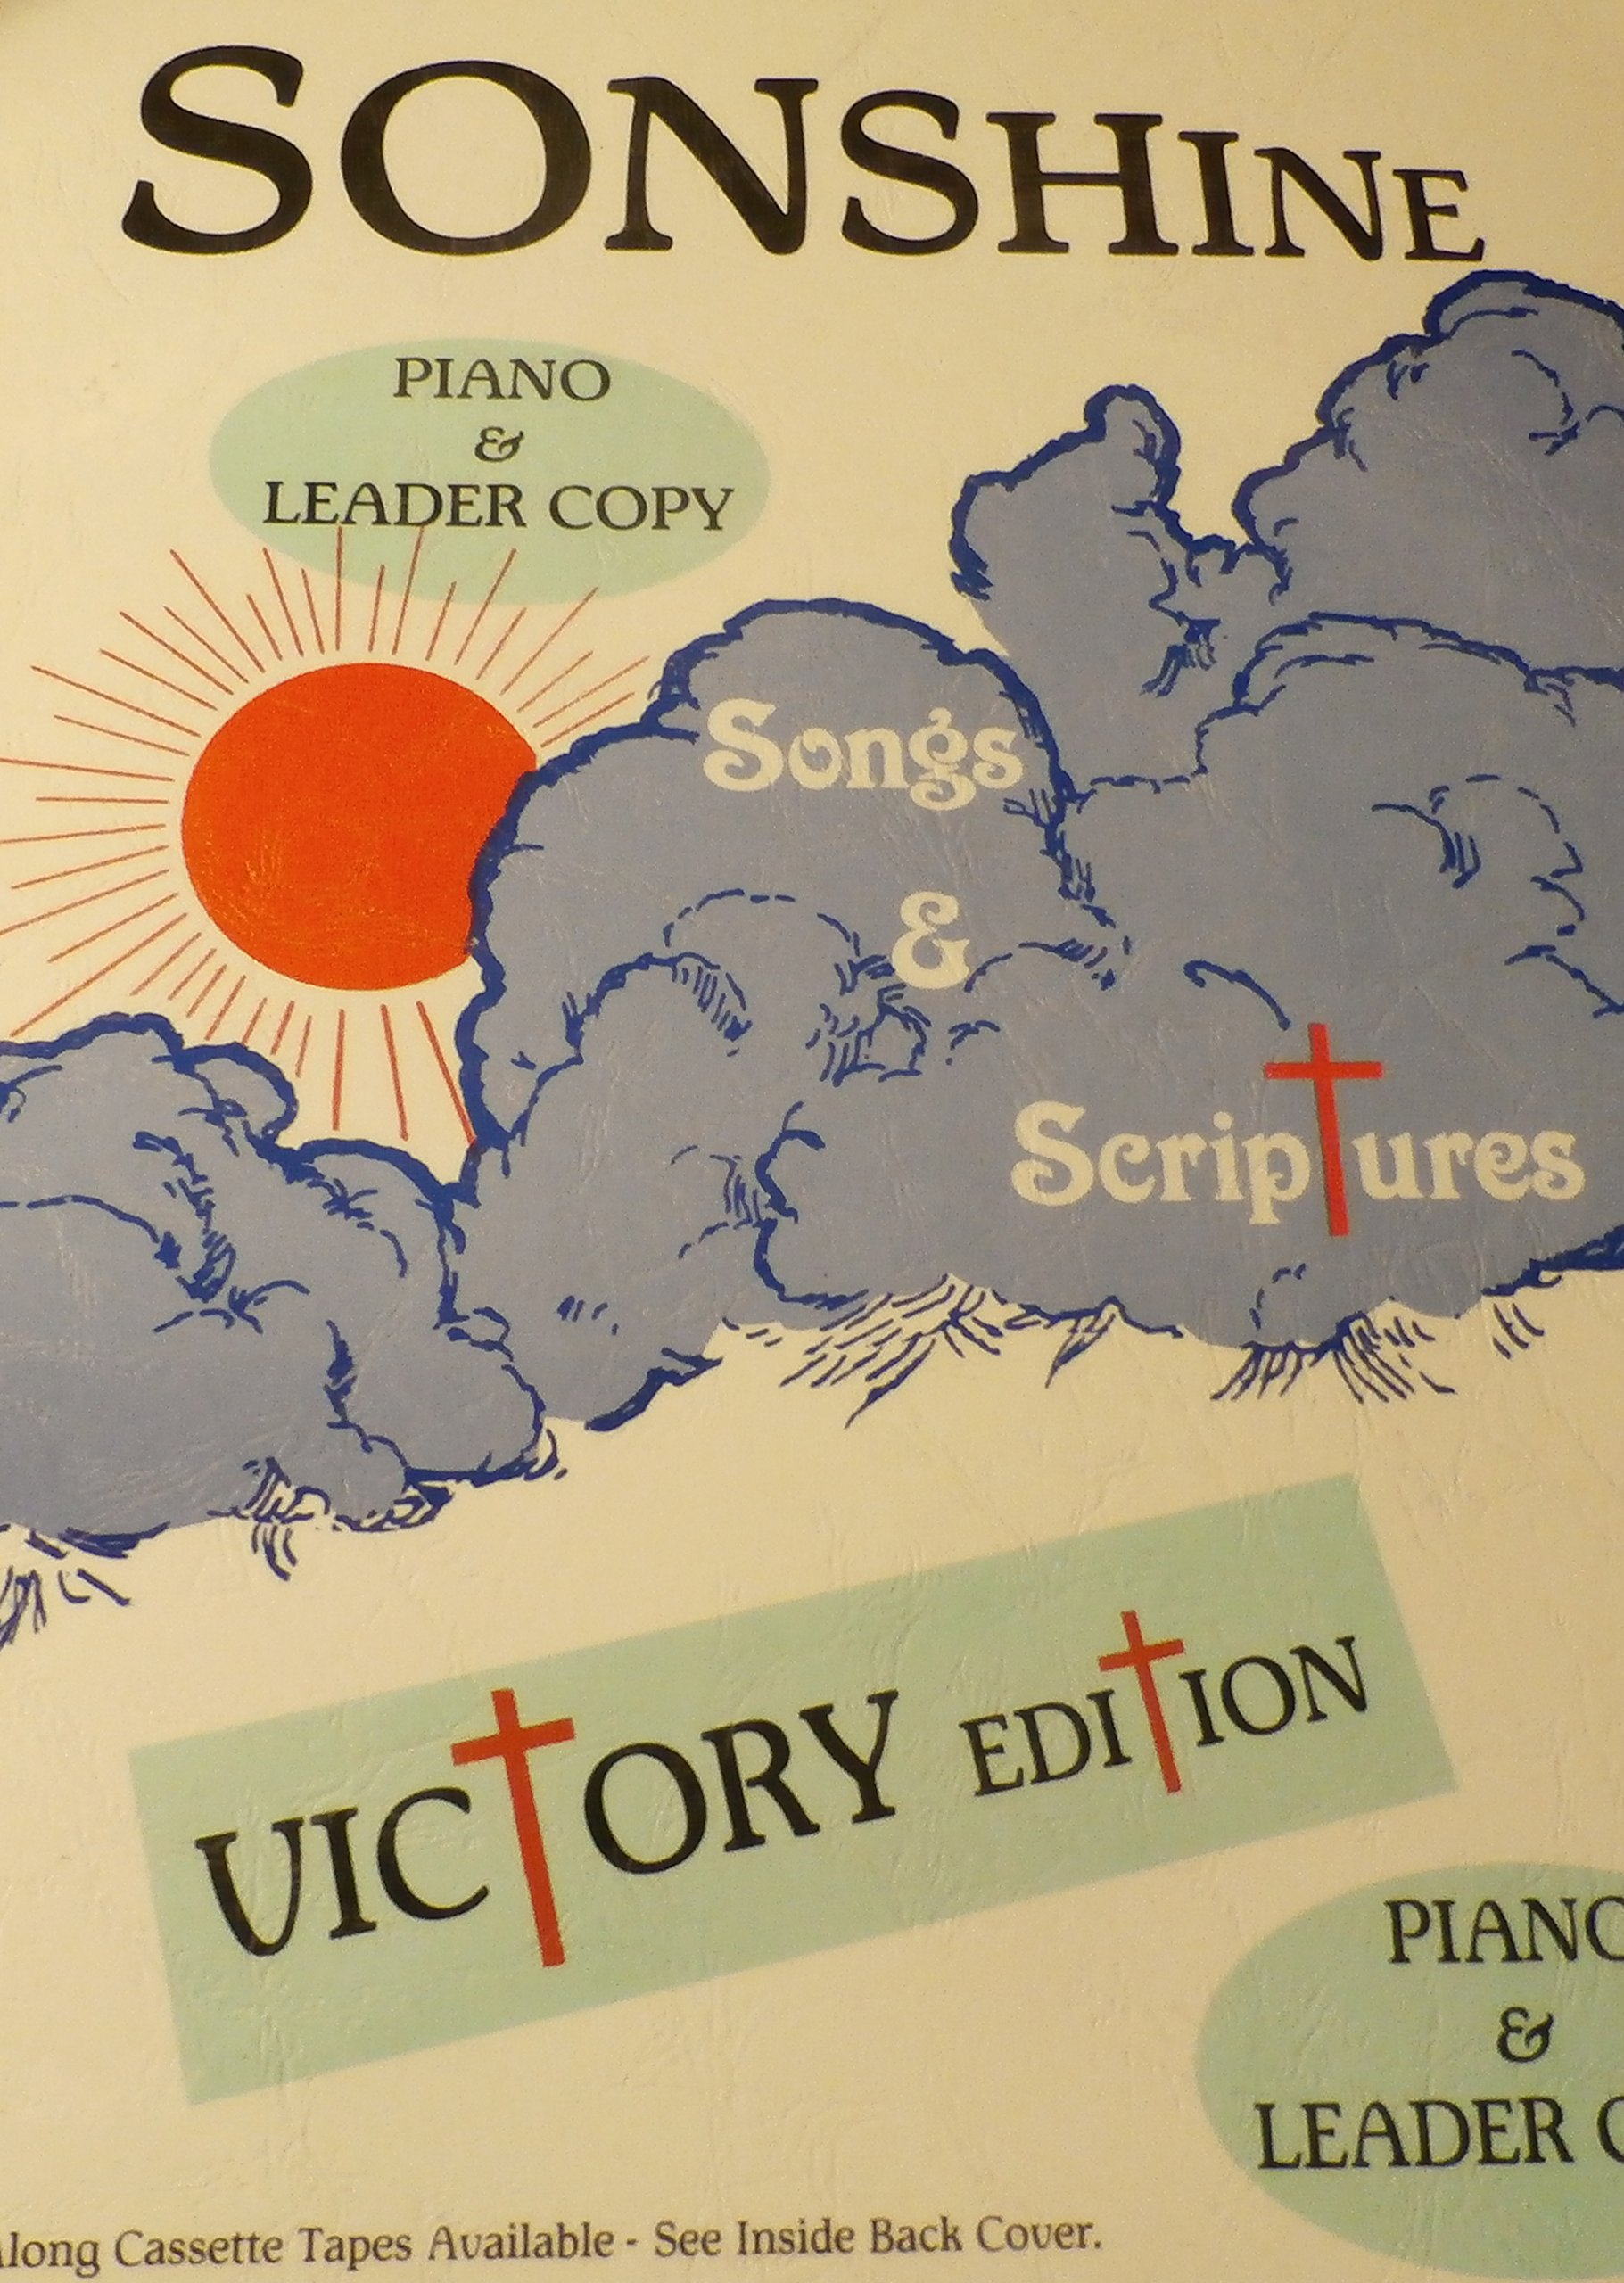 Sonshine Songs and Scriptures Piano and Leader Copy Victory Edition